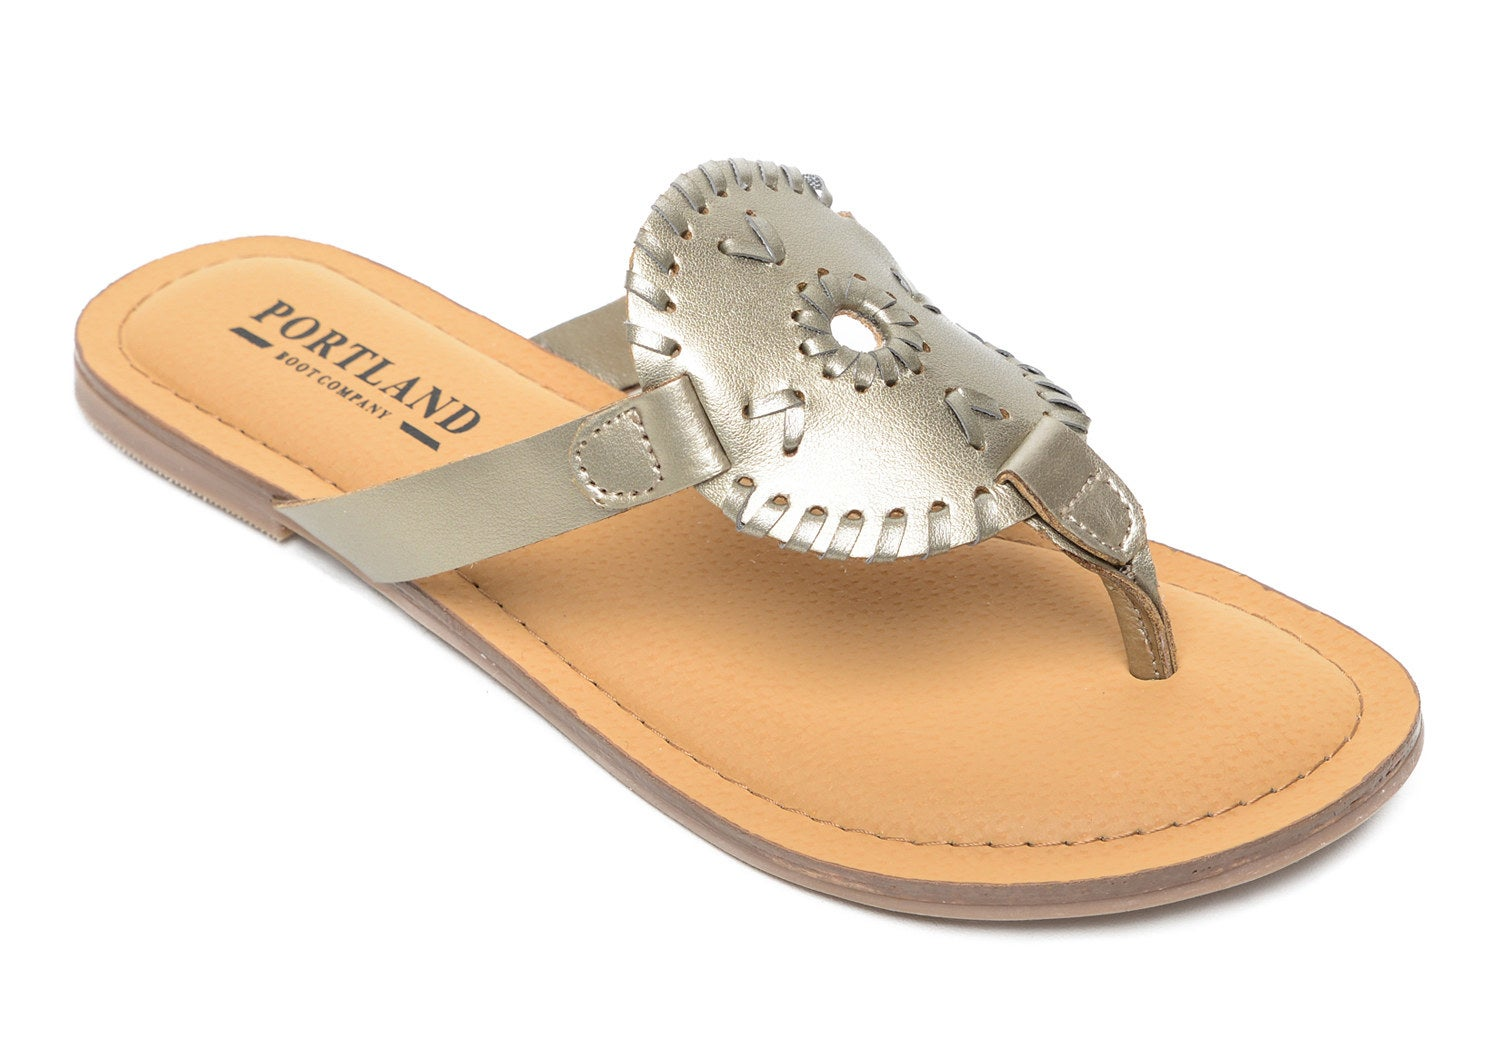 one portland boot company sandal with a metallic gold sandal design